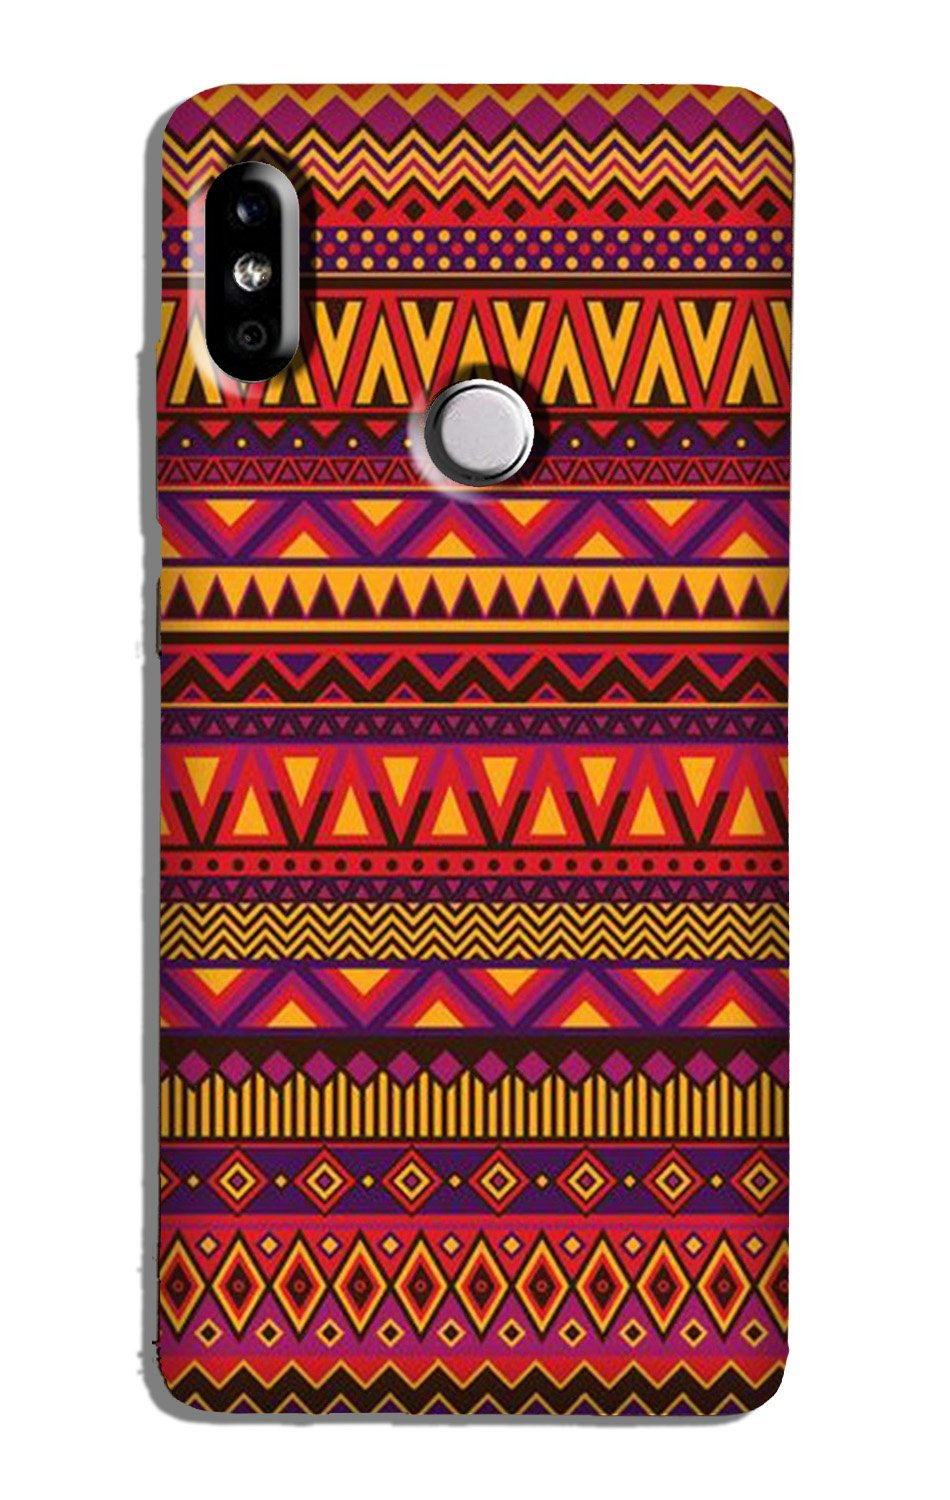 Zigzag line pattern2 Case for Redmi Note 5 Pro